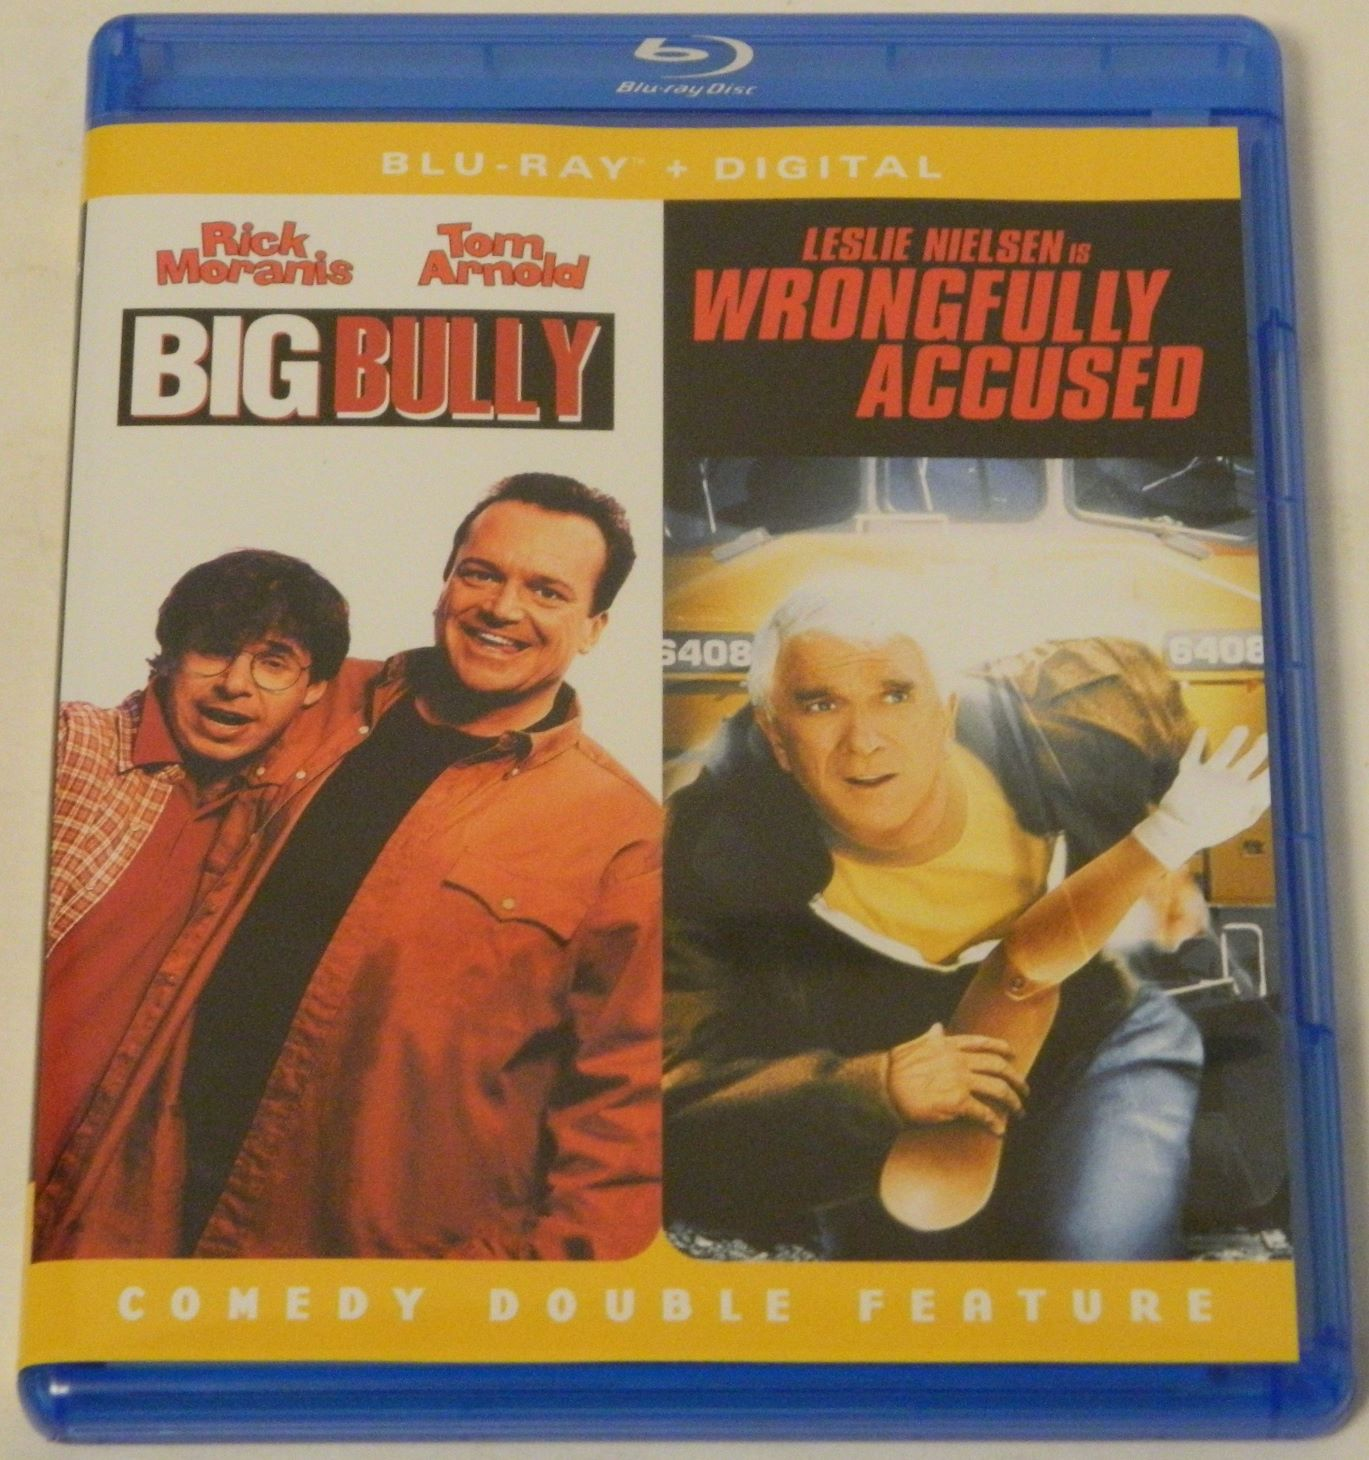 Big Bully and Wrongfully Accused Comedy Double Feature Blu-ray